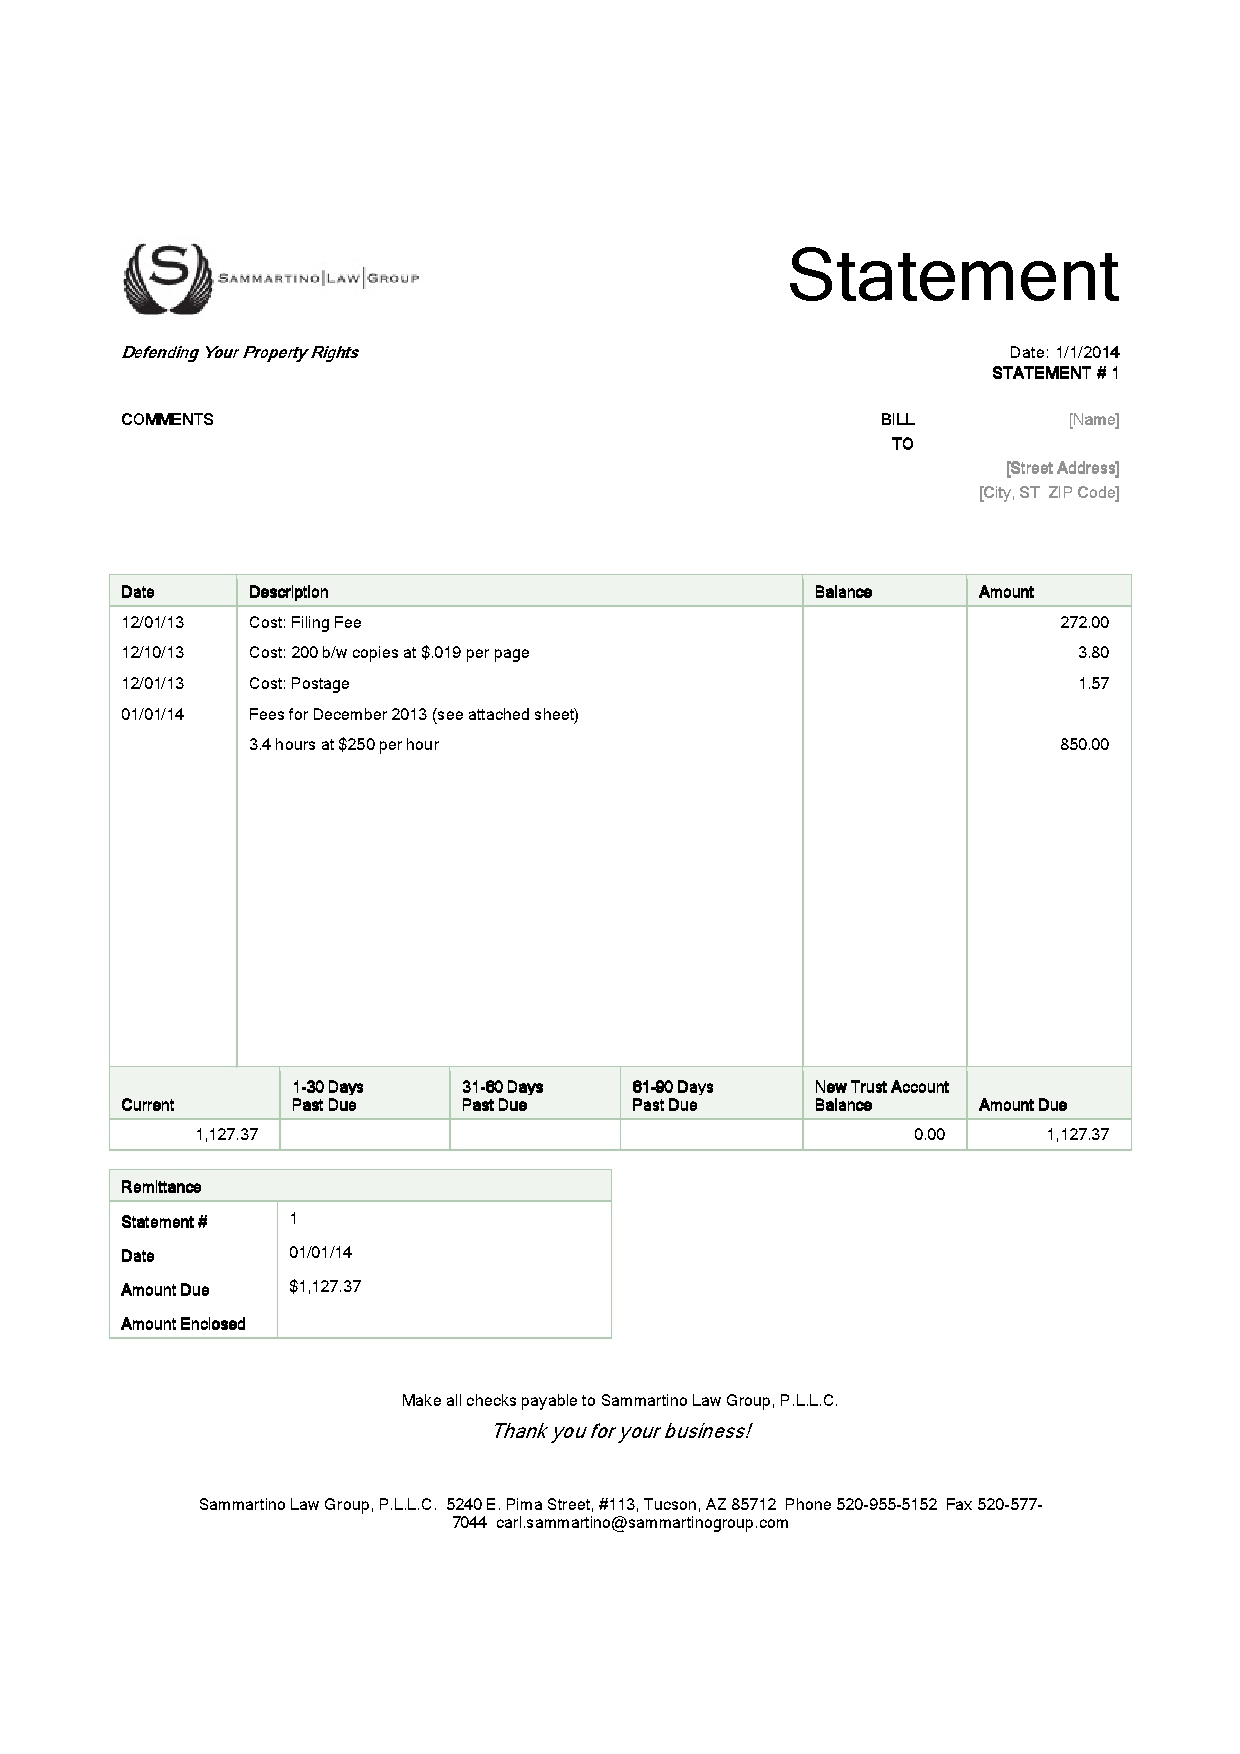 A sample Sammartino Law Group invoice. All amounts are for exemplary purposes only.